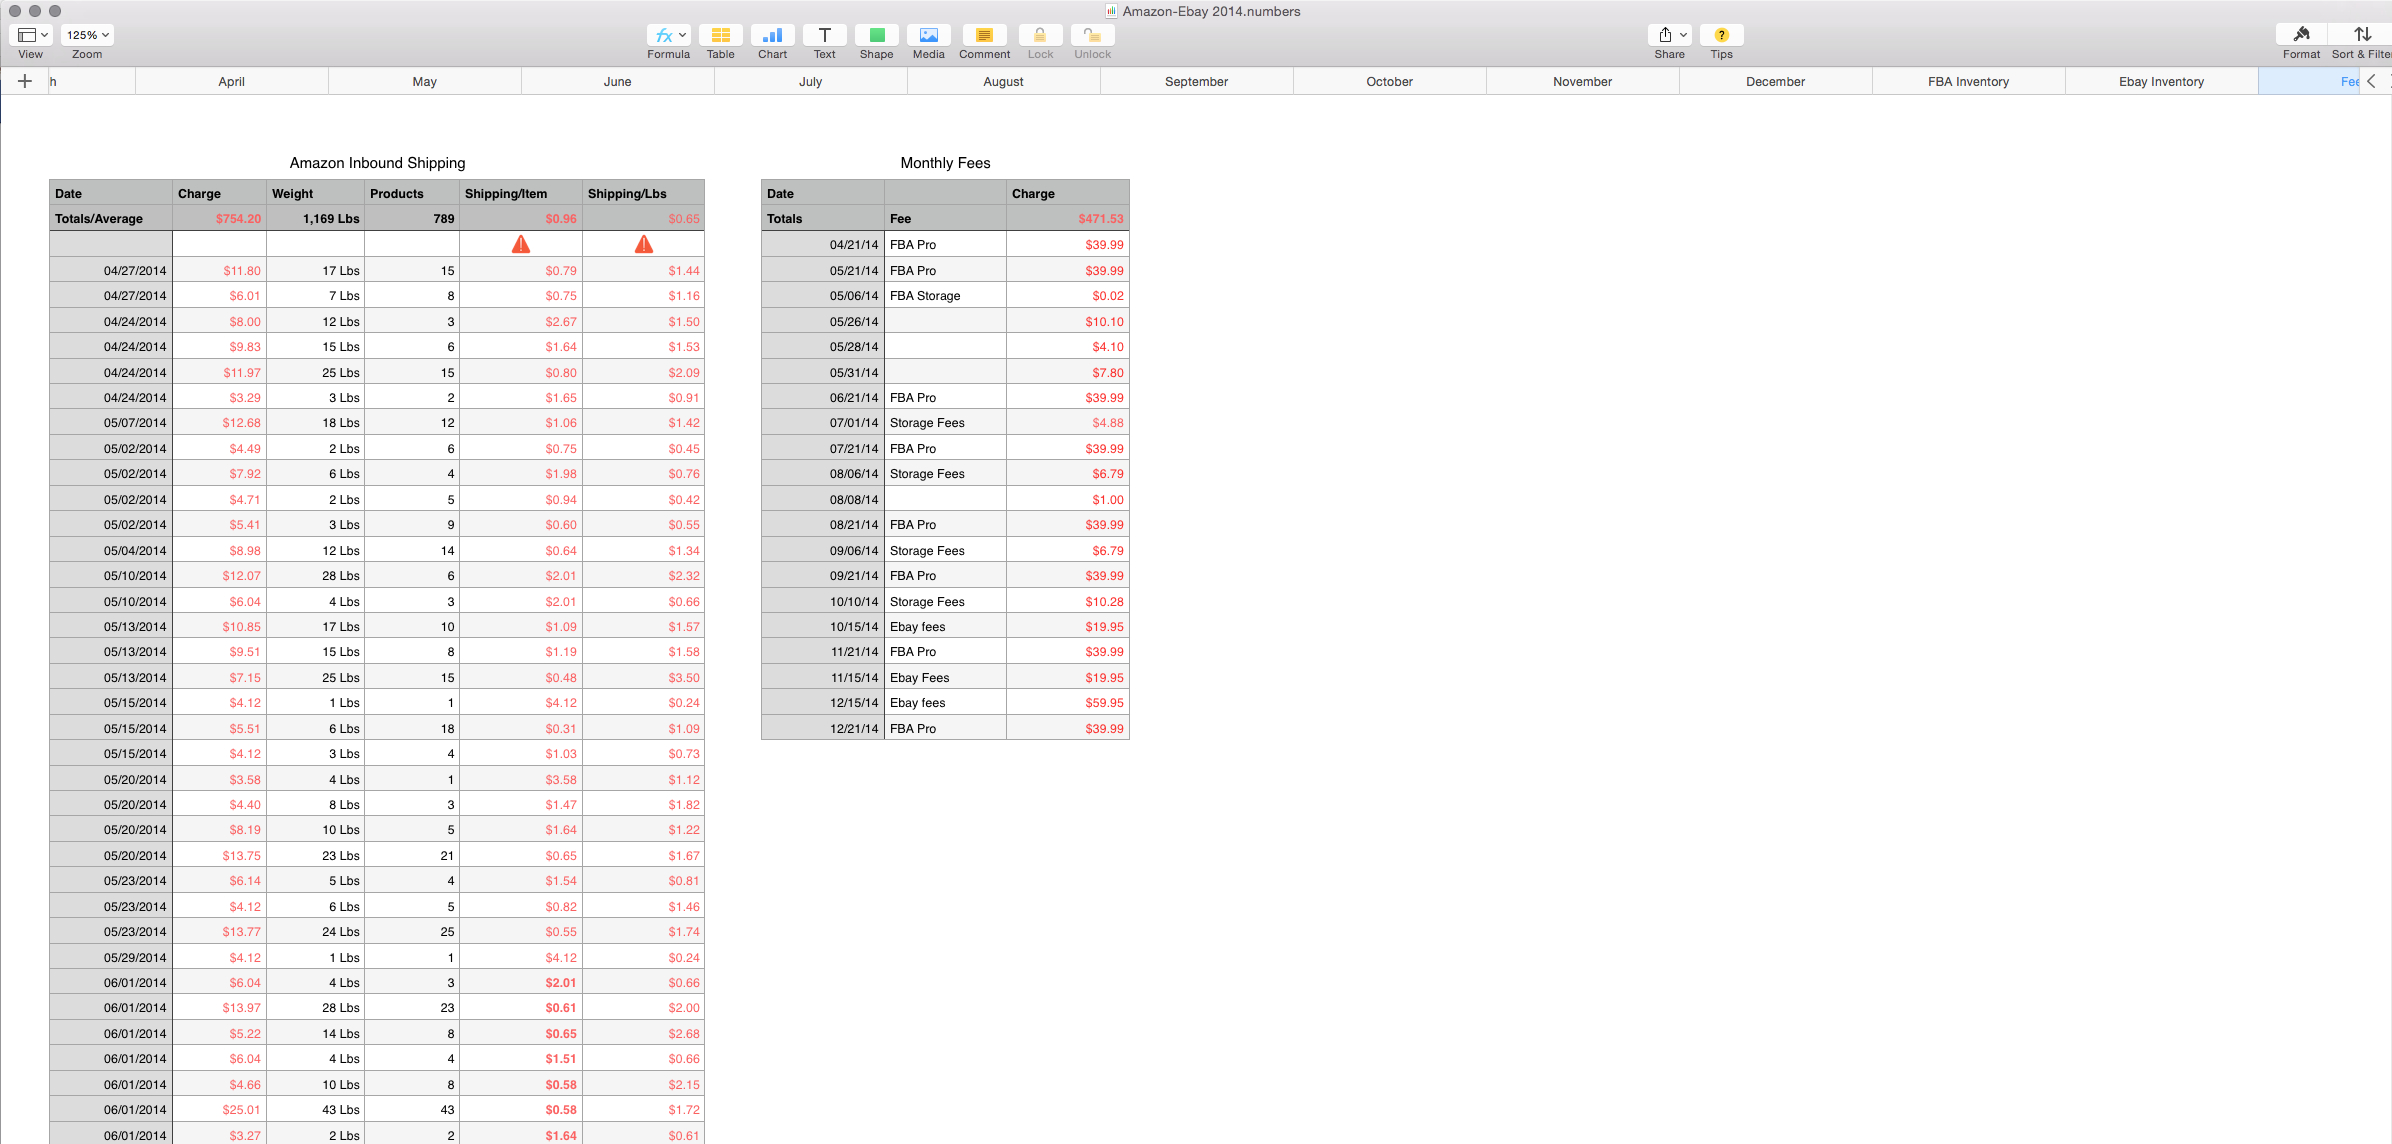 Sales Tracking Spreadsheet   Mac Numbers Template   My Multiple Streams For Ebay And Amazon Sales Tracking Spreadsheet